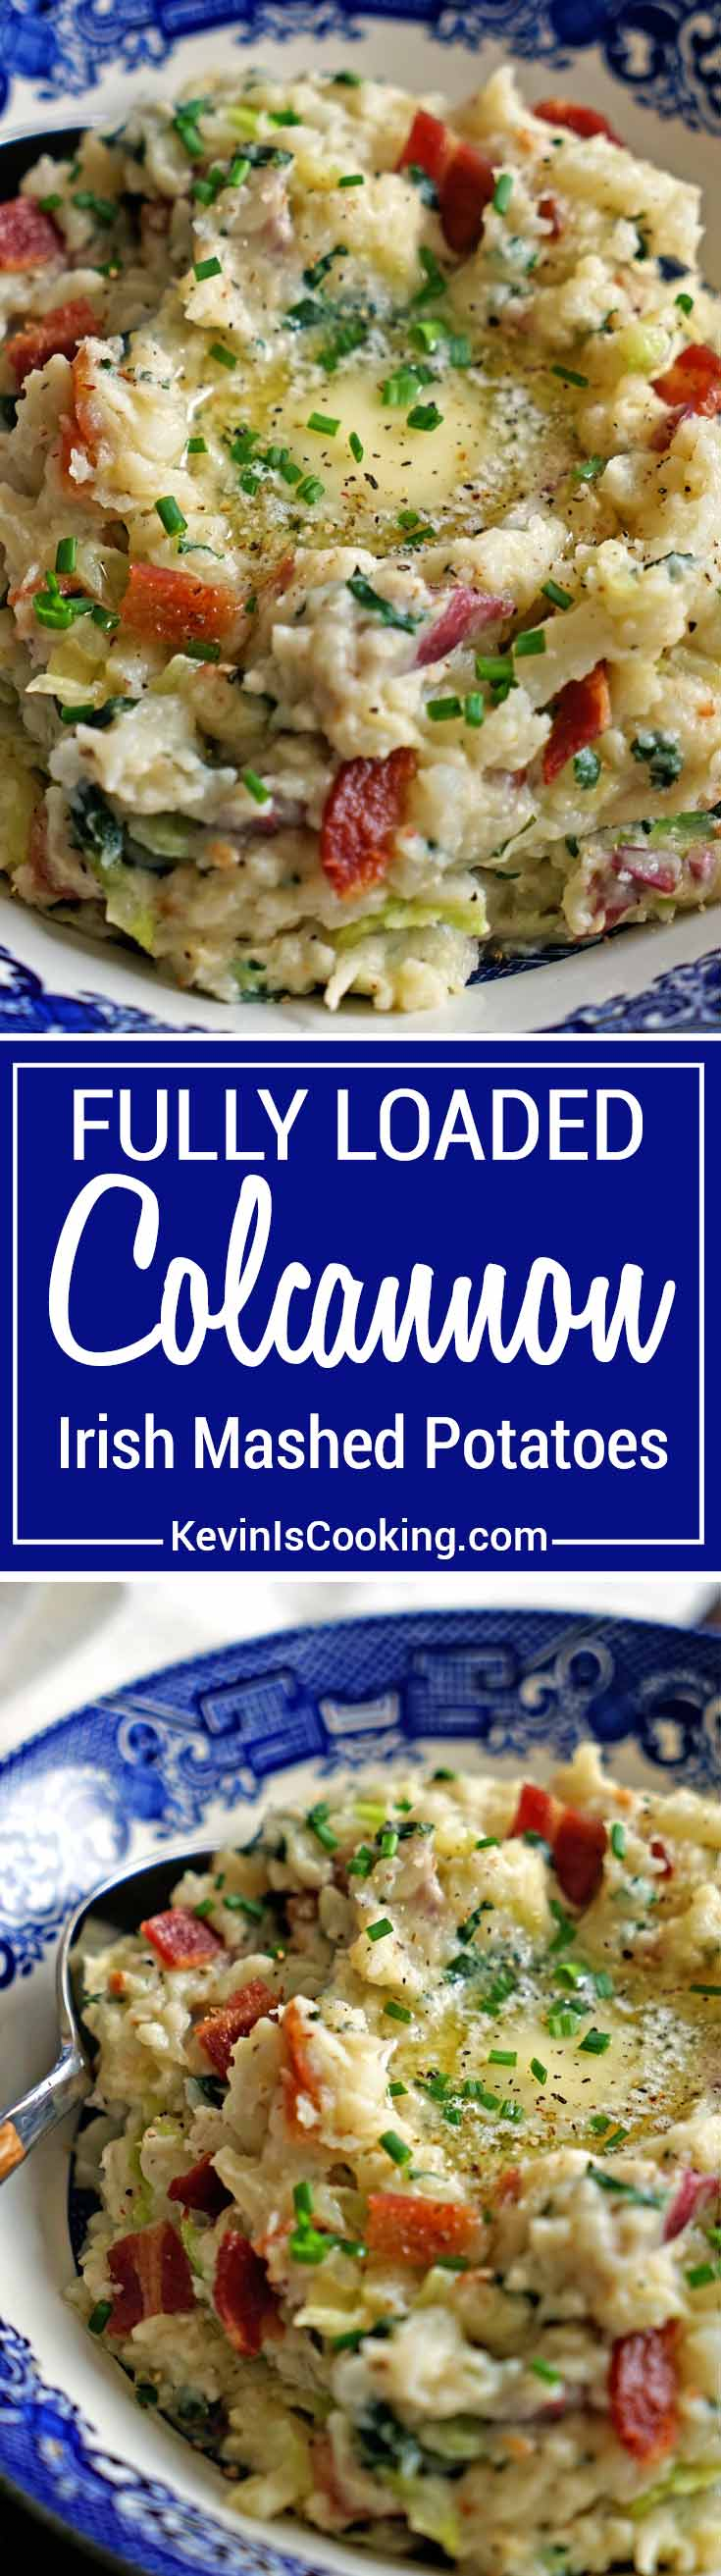 Colcannon Irish Mashed Potatoes - red potatoes, cream and garlic are mashed together with green cabbage and kale. Mine are topped with crisp bacon & butter!